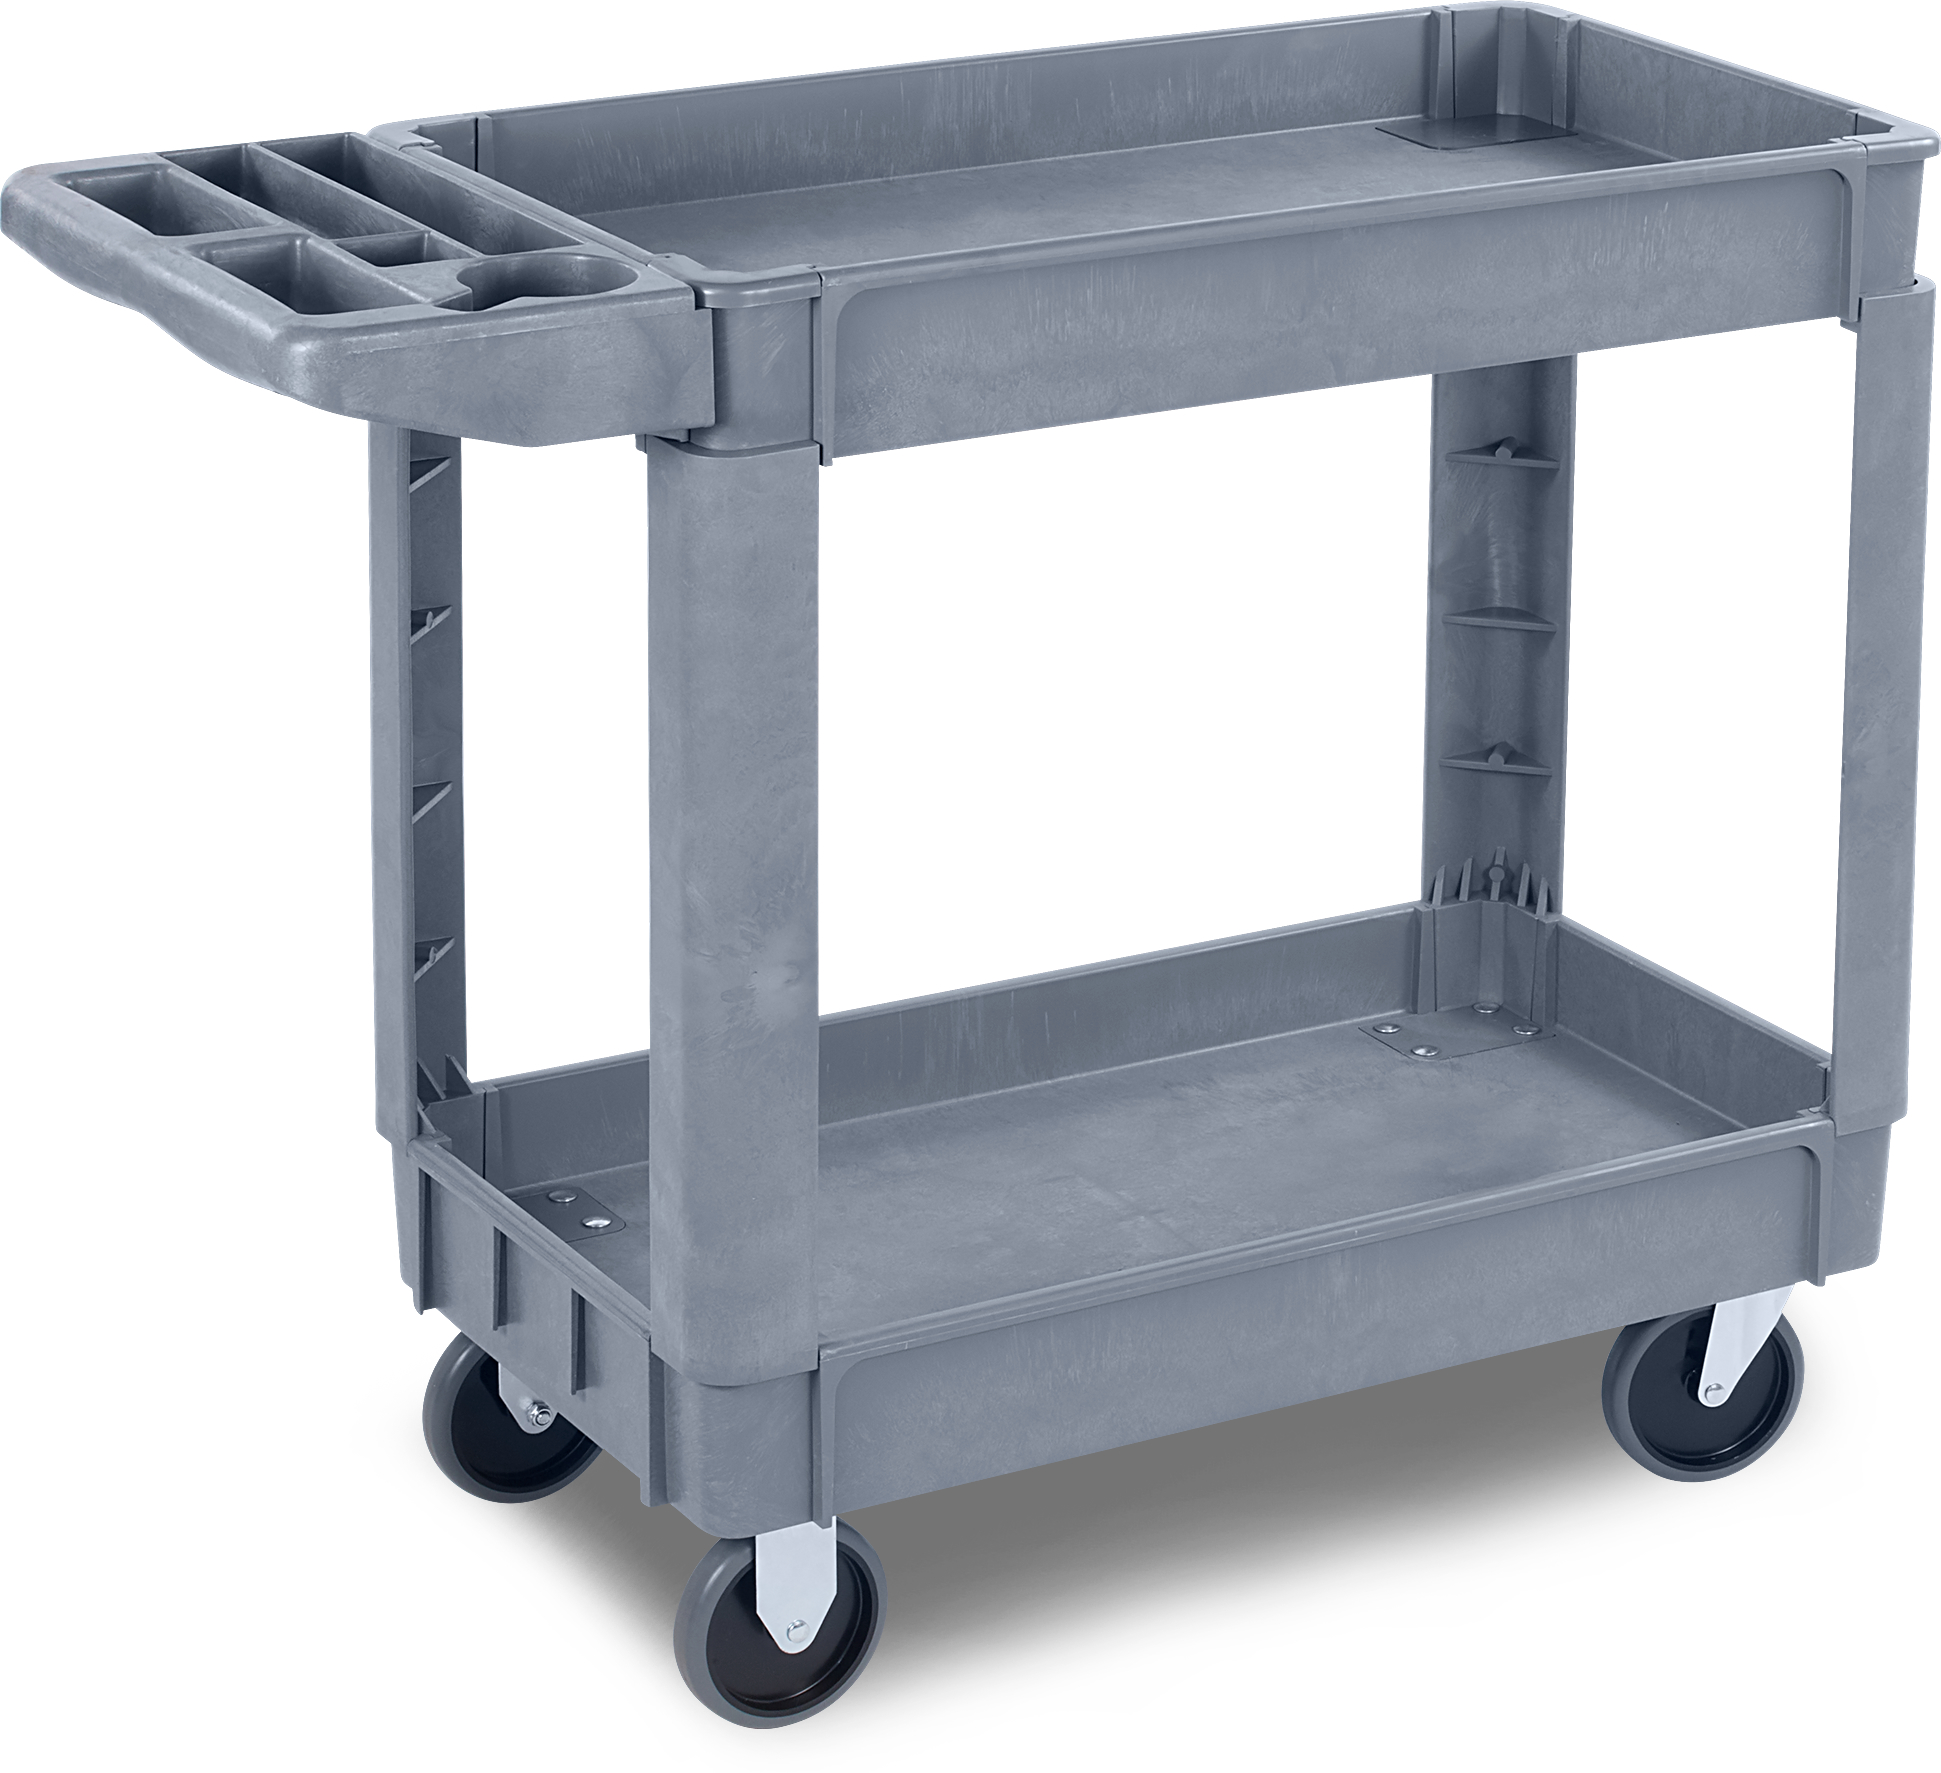 Small Laundry Cart Uc401823 Bin Top Utility Carts Small Bin Top Utility